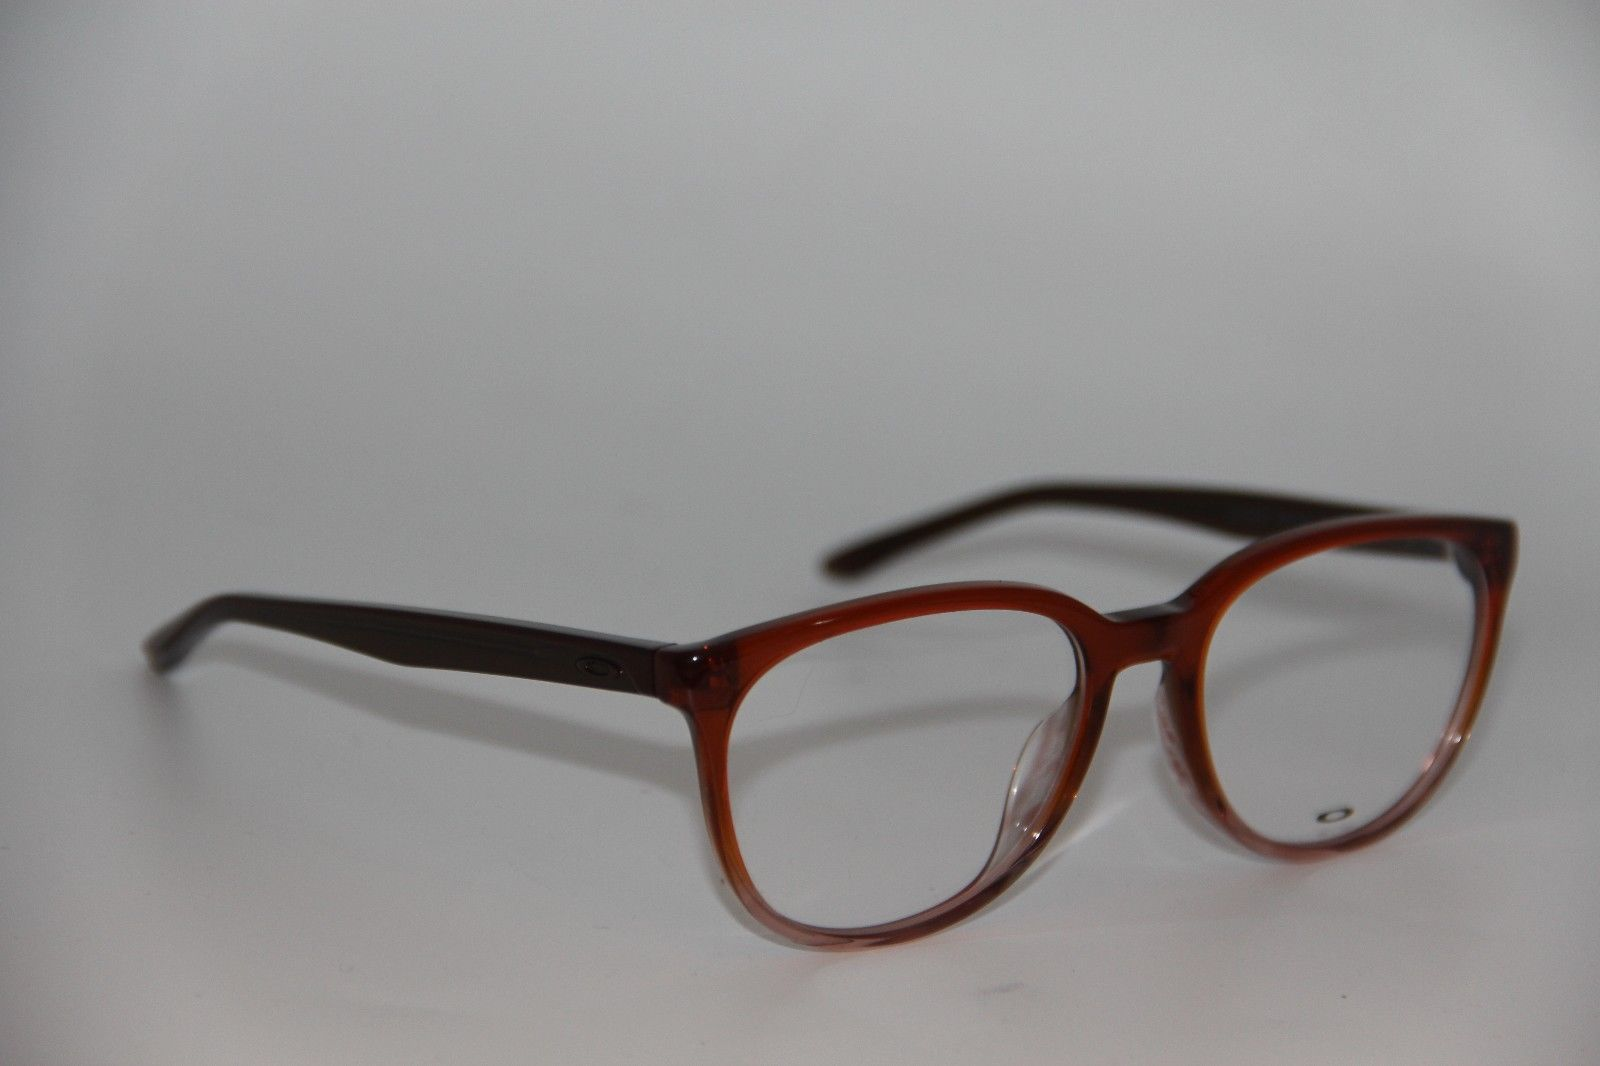 c5f05923482 NEW OAKLEY OX1135-0252 BROWN FADE REVERSAL EYEGLASSES AUTHENTIC RX 52-17 W